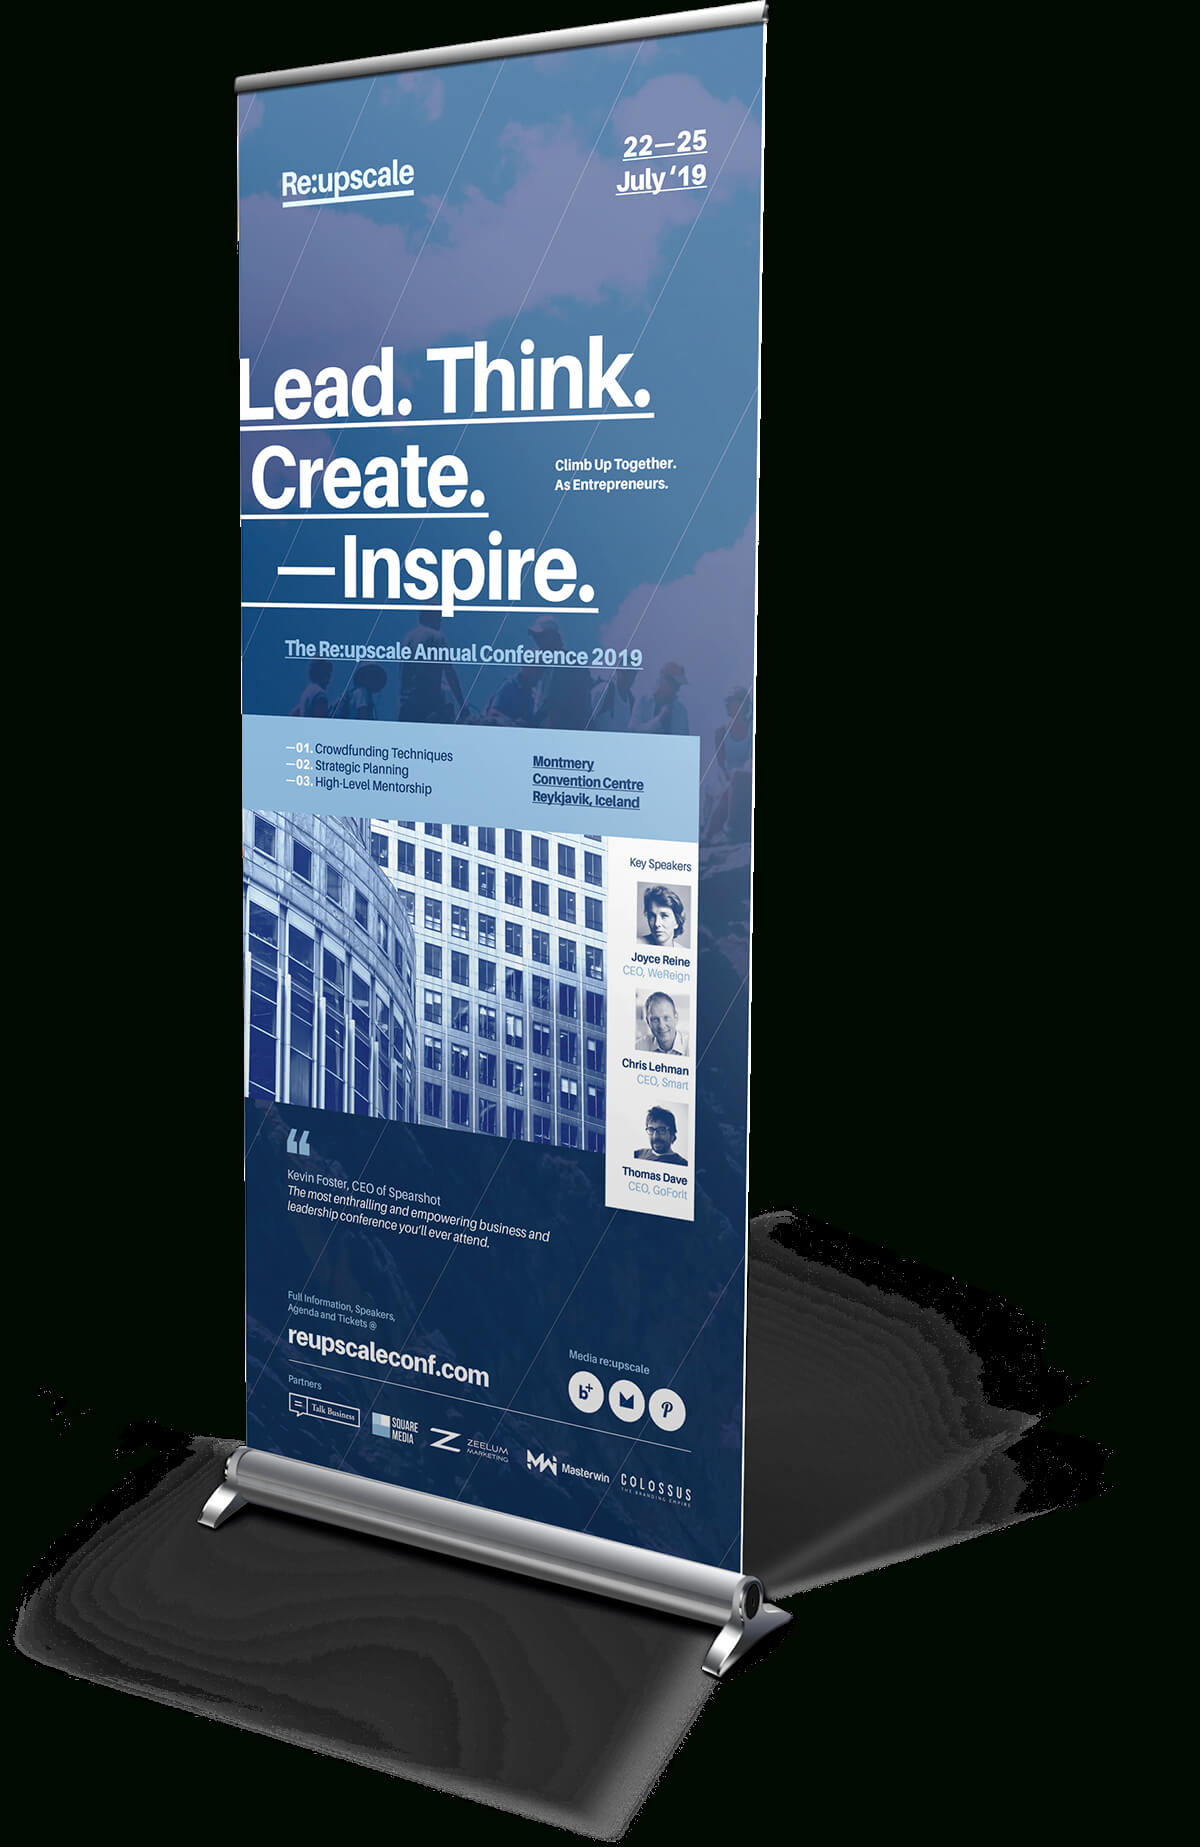 Event Roll Up Banner Templates On Behance | Layout Design With Pop Up Banner Design Template